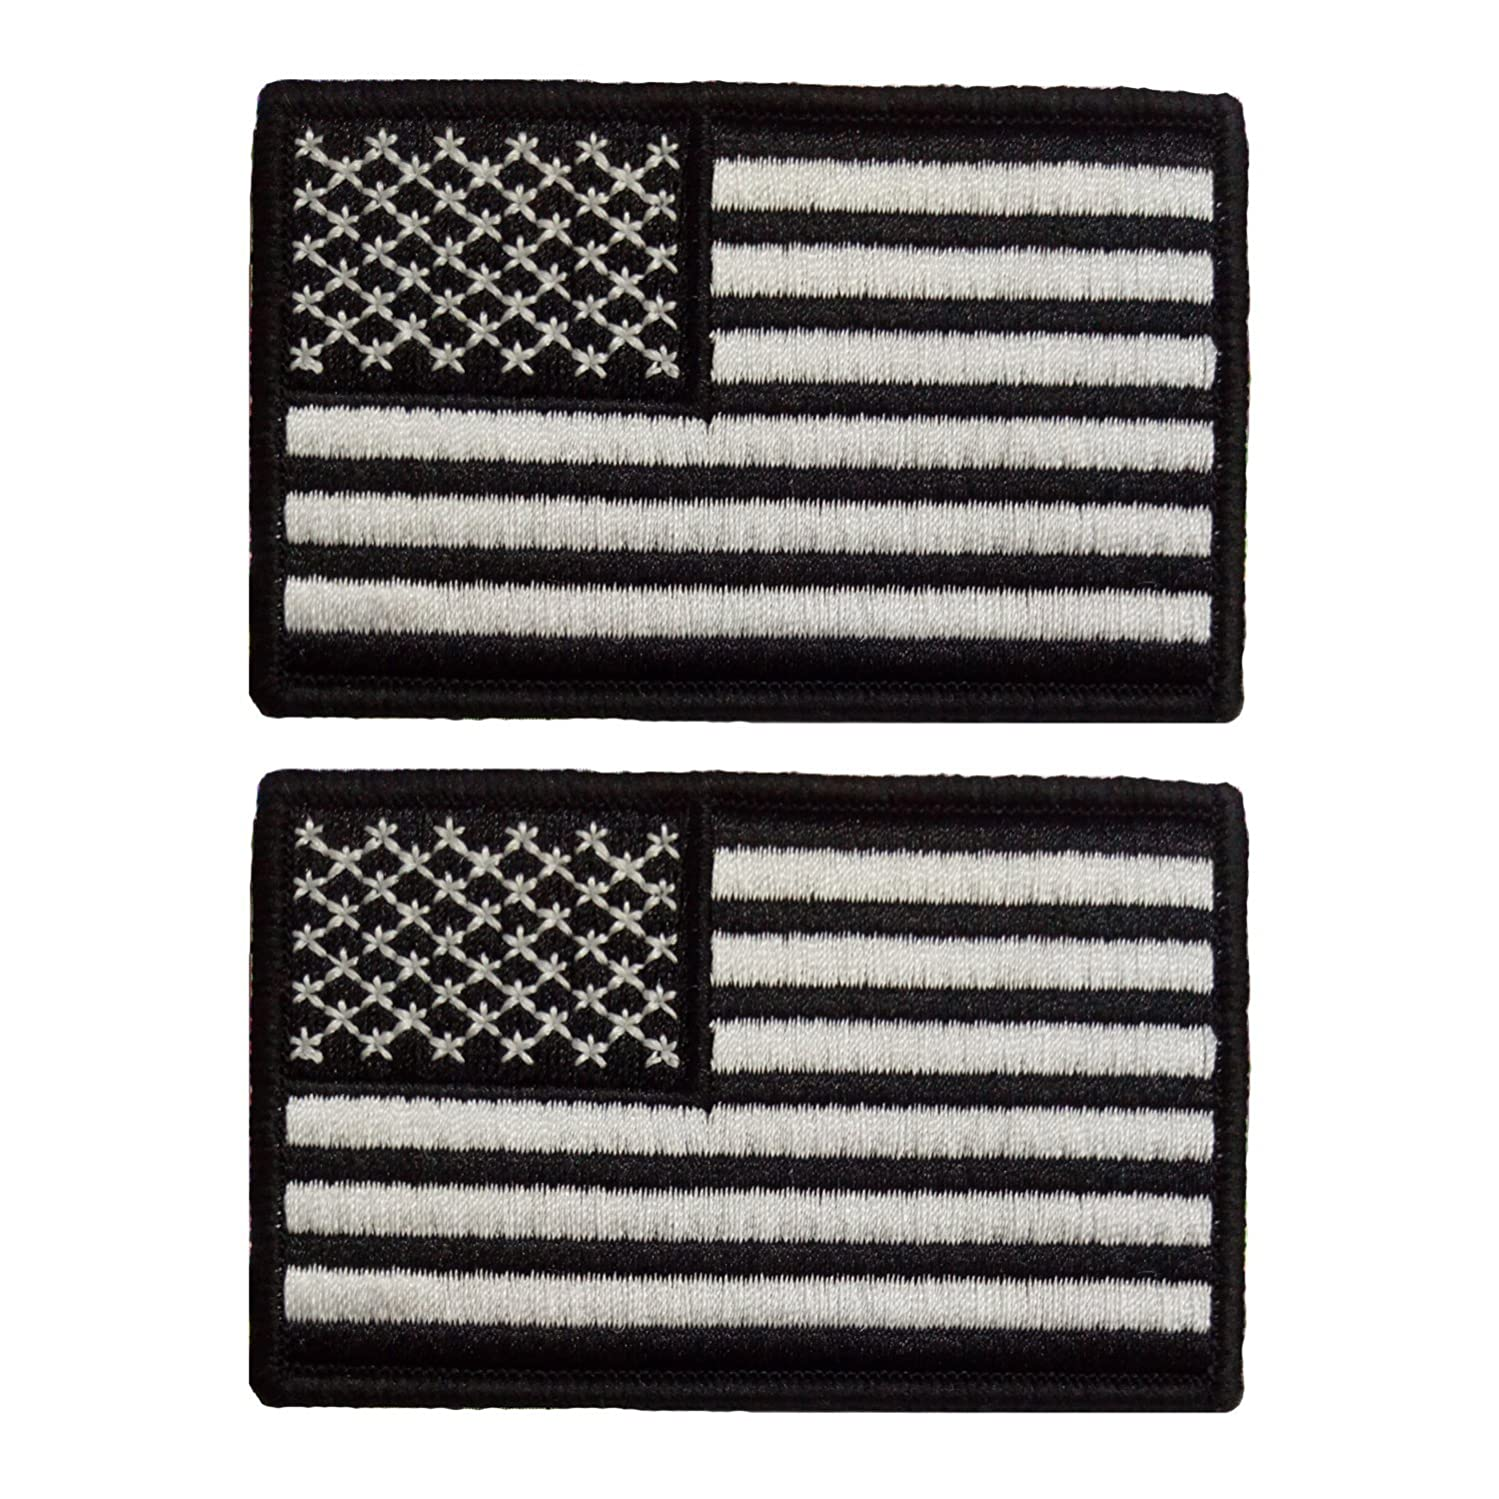 Yisibo Set of 2 Tactical US Flag Patch Nylon American Embroidery Patch Badge for Hats Gear Bags Caps (Rectangle, USA Flag-White&Black) knsw367539848